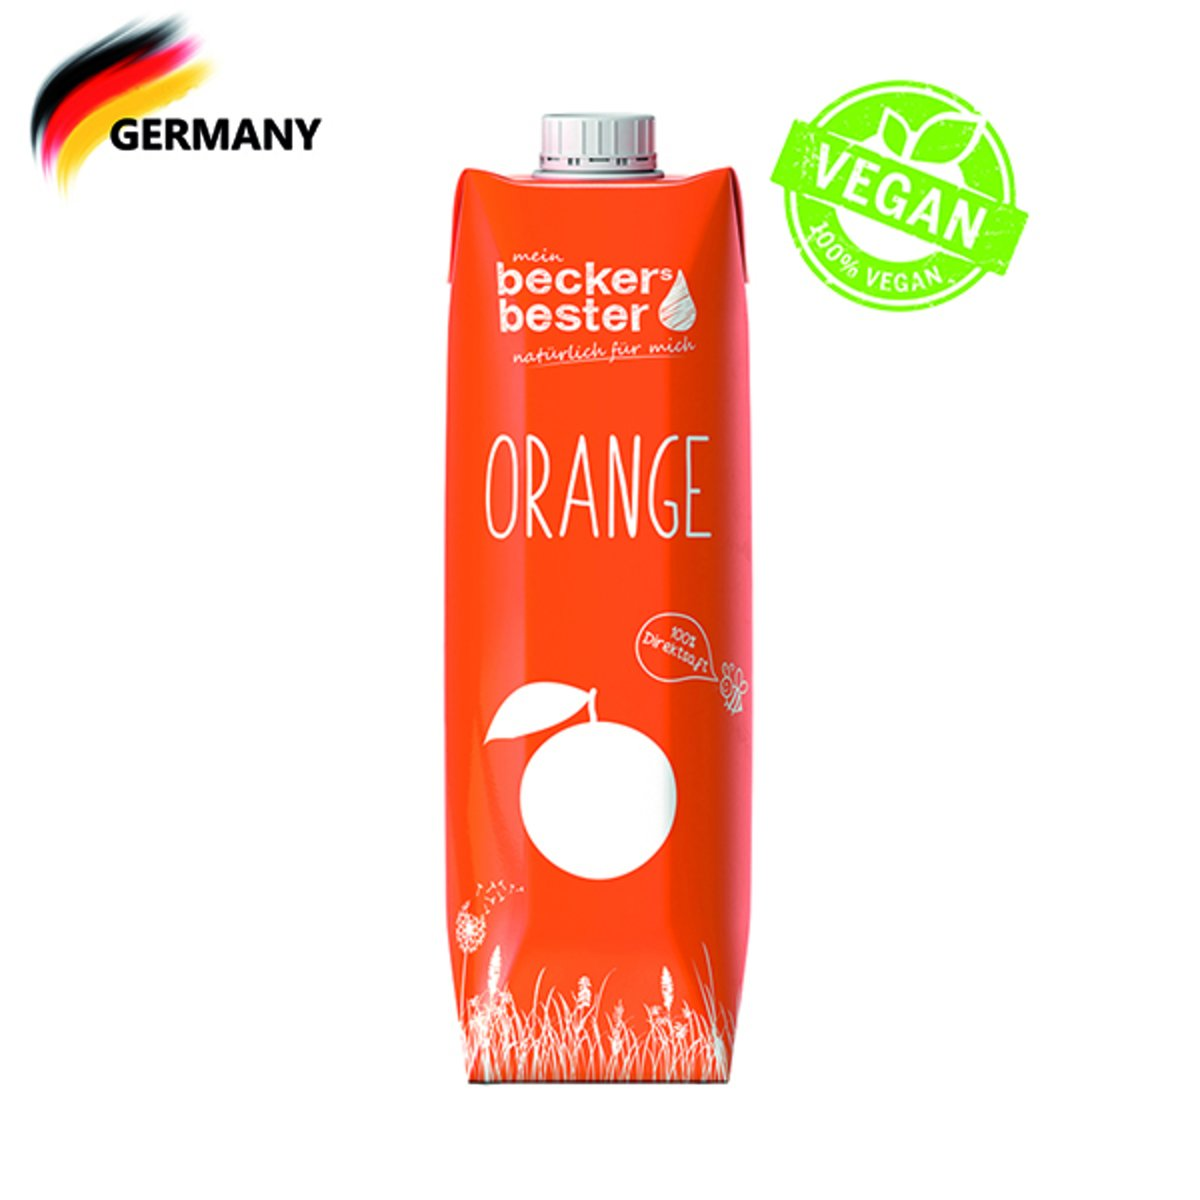 100%直壓非濃縮橙汁 Orange Juice (Not-From-Concentrate) 1L